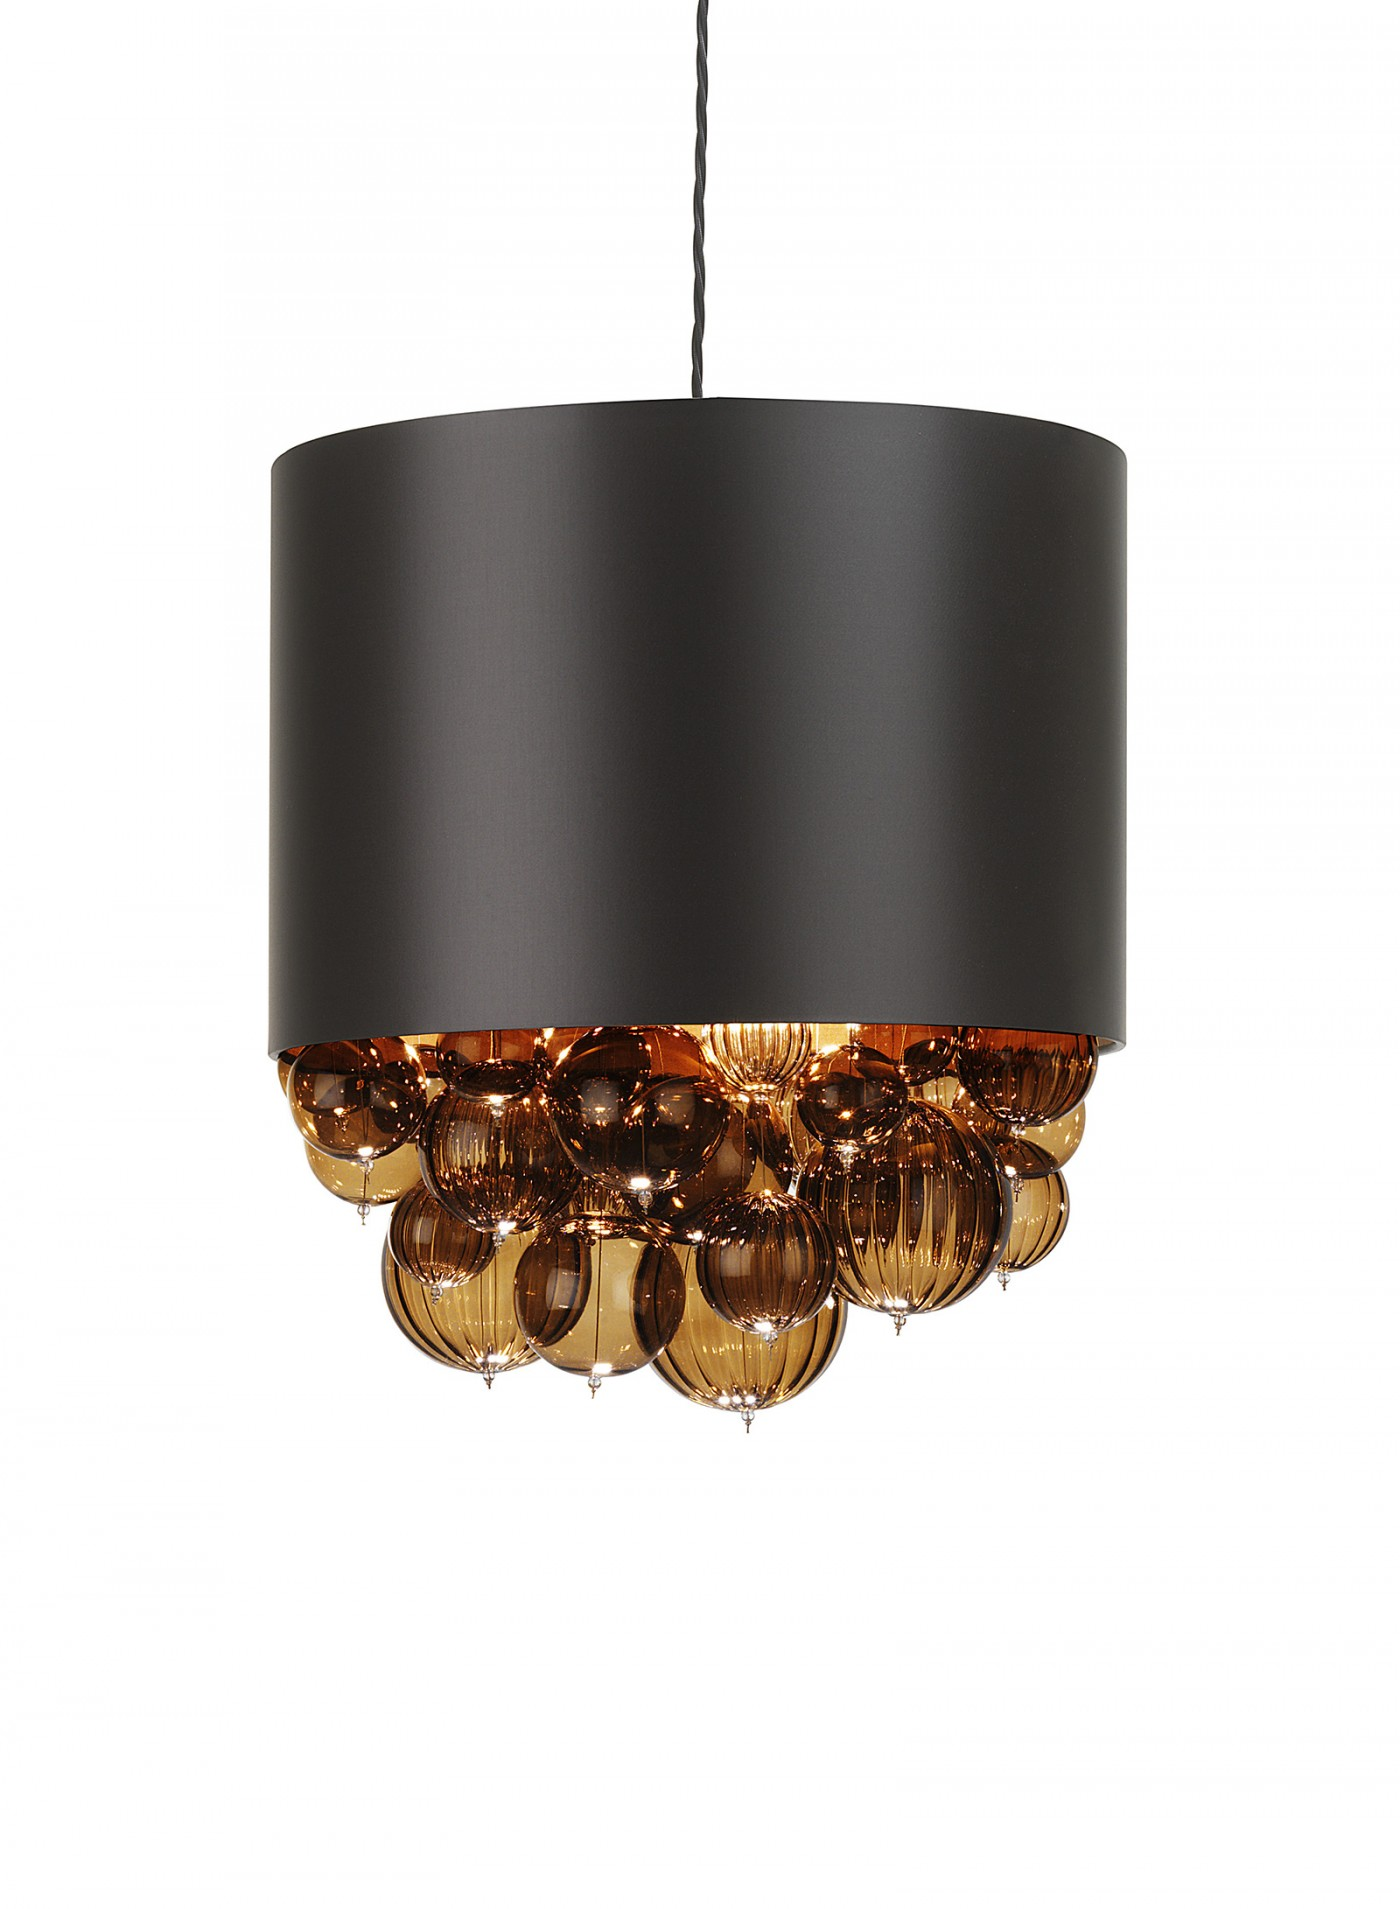 dp29 decorative pendant malisa lighting